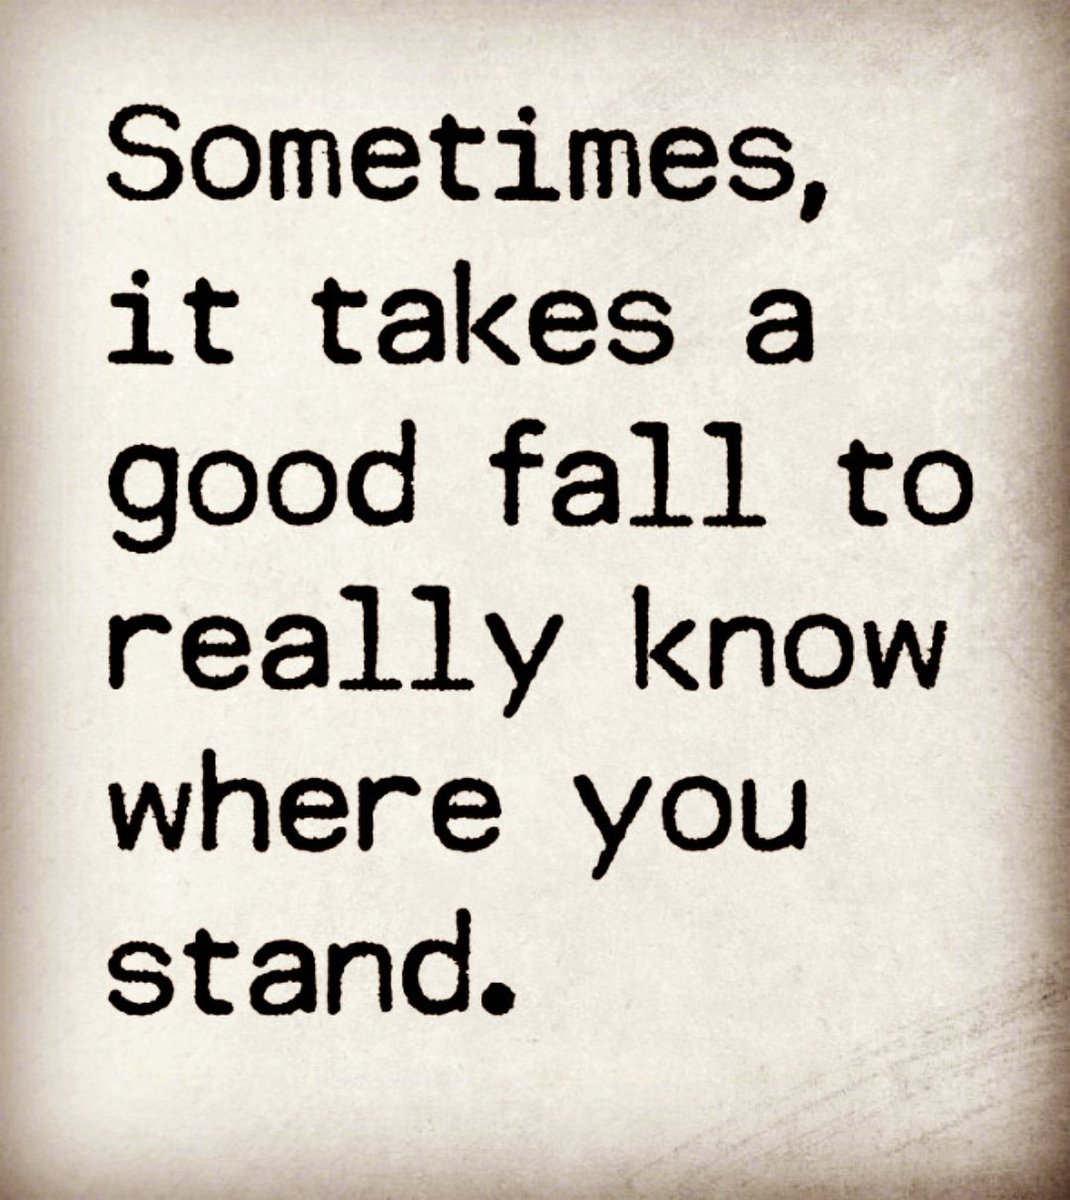 We all fall sometimes, but don't let the fear of failure keep you from succeeding.  #heartlevel #dreamscometrue #encouragement #dailyinspiration #dailyquotes #bestinspirationalquotes #encourageyourself  *Quote from  http:// thedailyquotes.com    <br>http://pic.twitter.com/FuliyXiYme